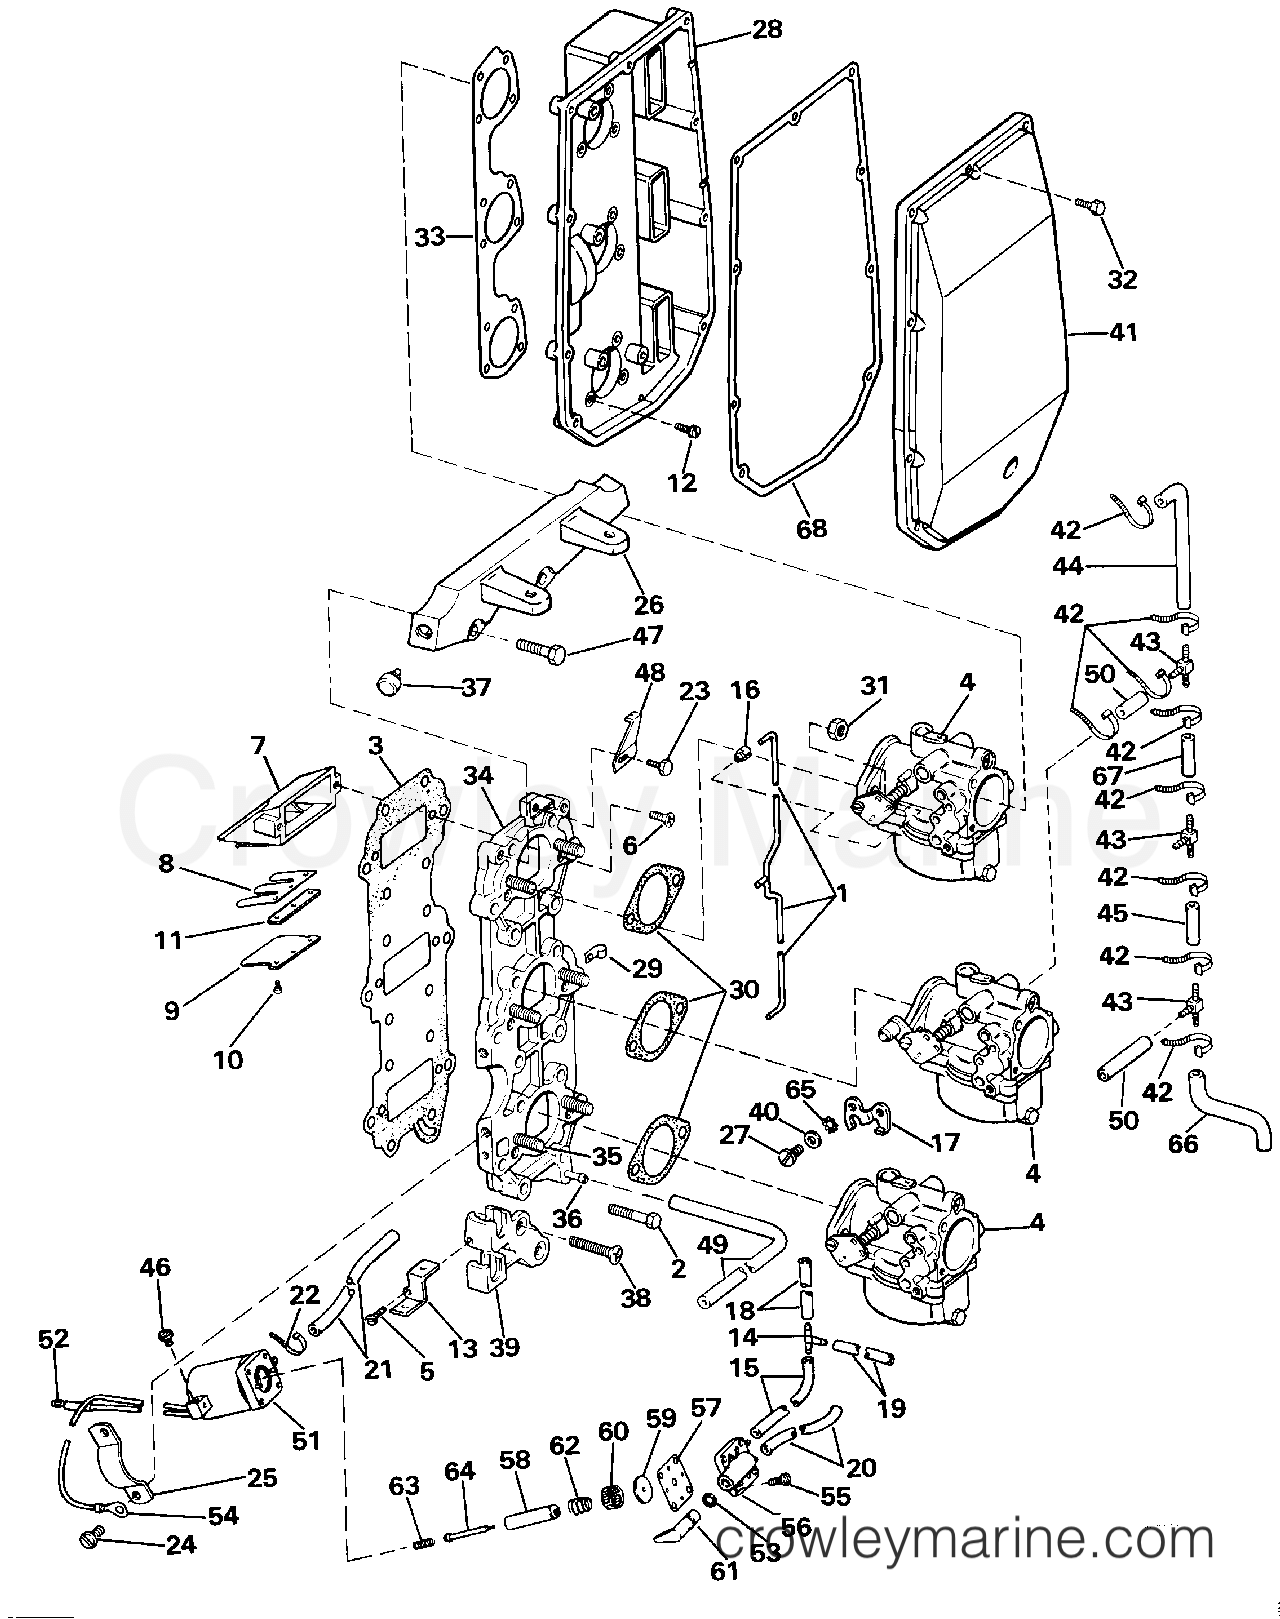 intake manifold 1986 evinrude outboards 70 e70elcdc With diagram of 1986 e70elcdc evinrude intake manifold diagram and parts